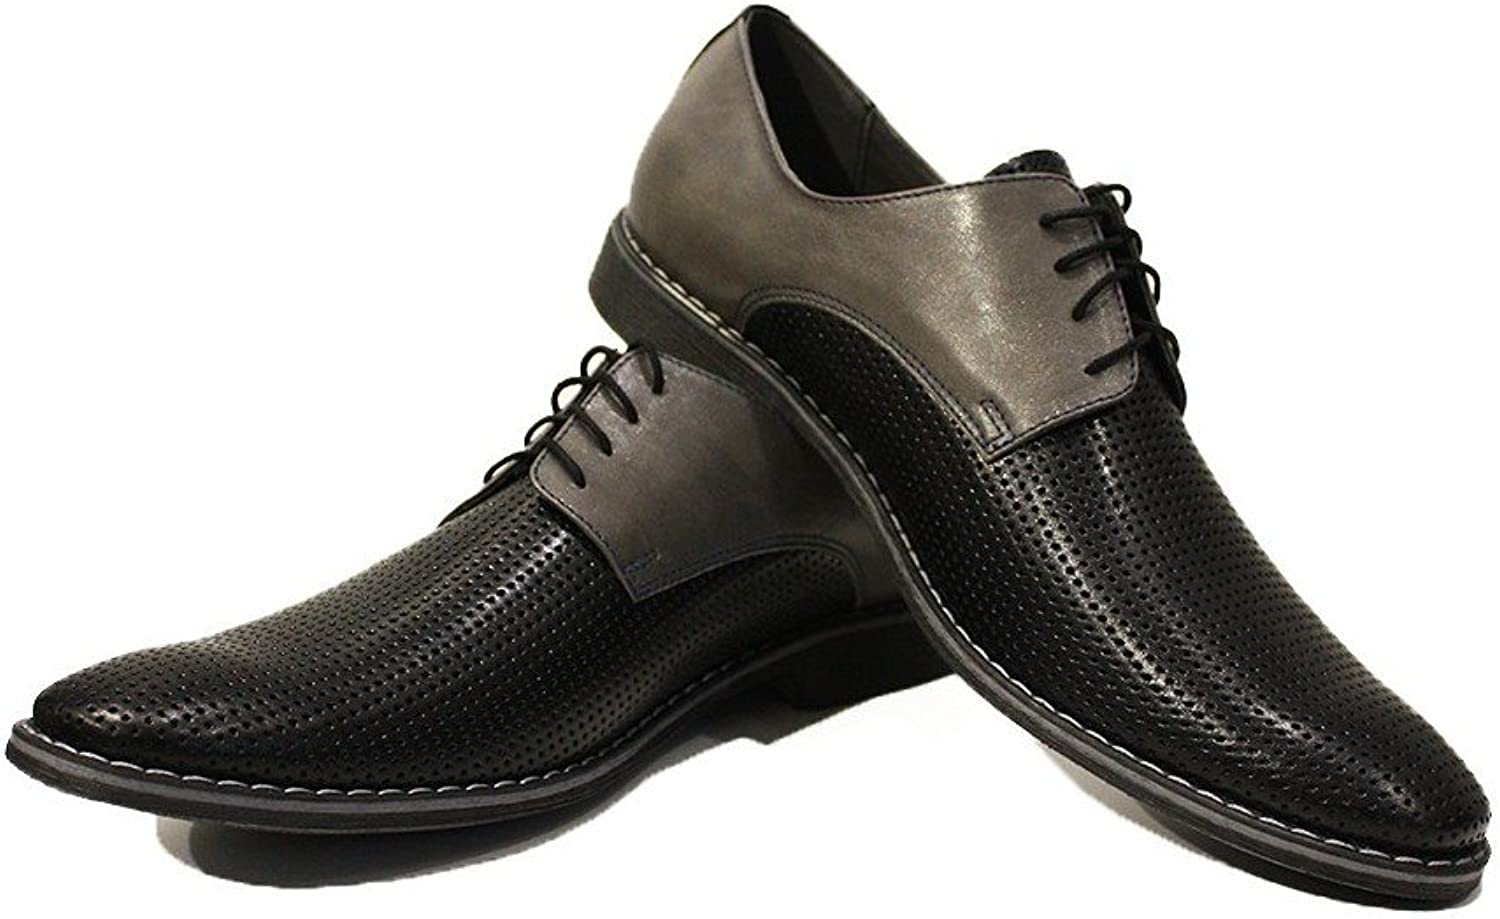 Modello Gianni - Handmade colorful Italian Leather Oxfords Unique Lace Up Dress Men's shoes